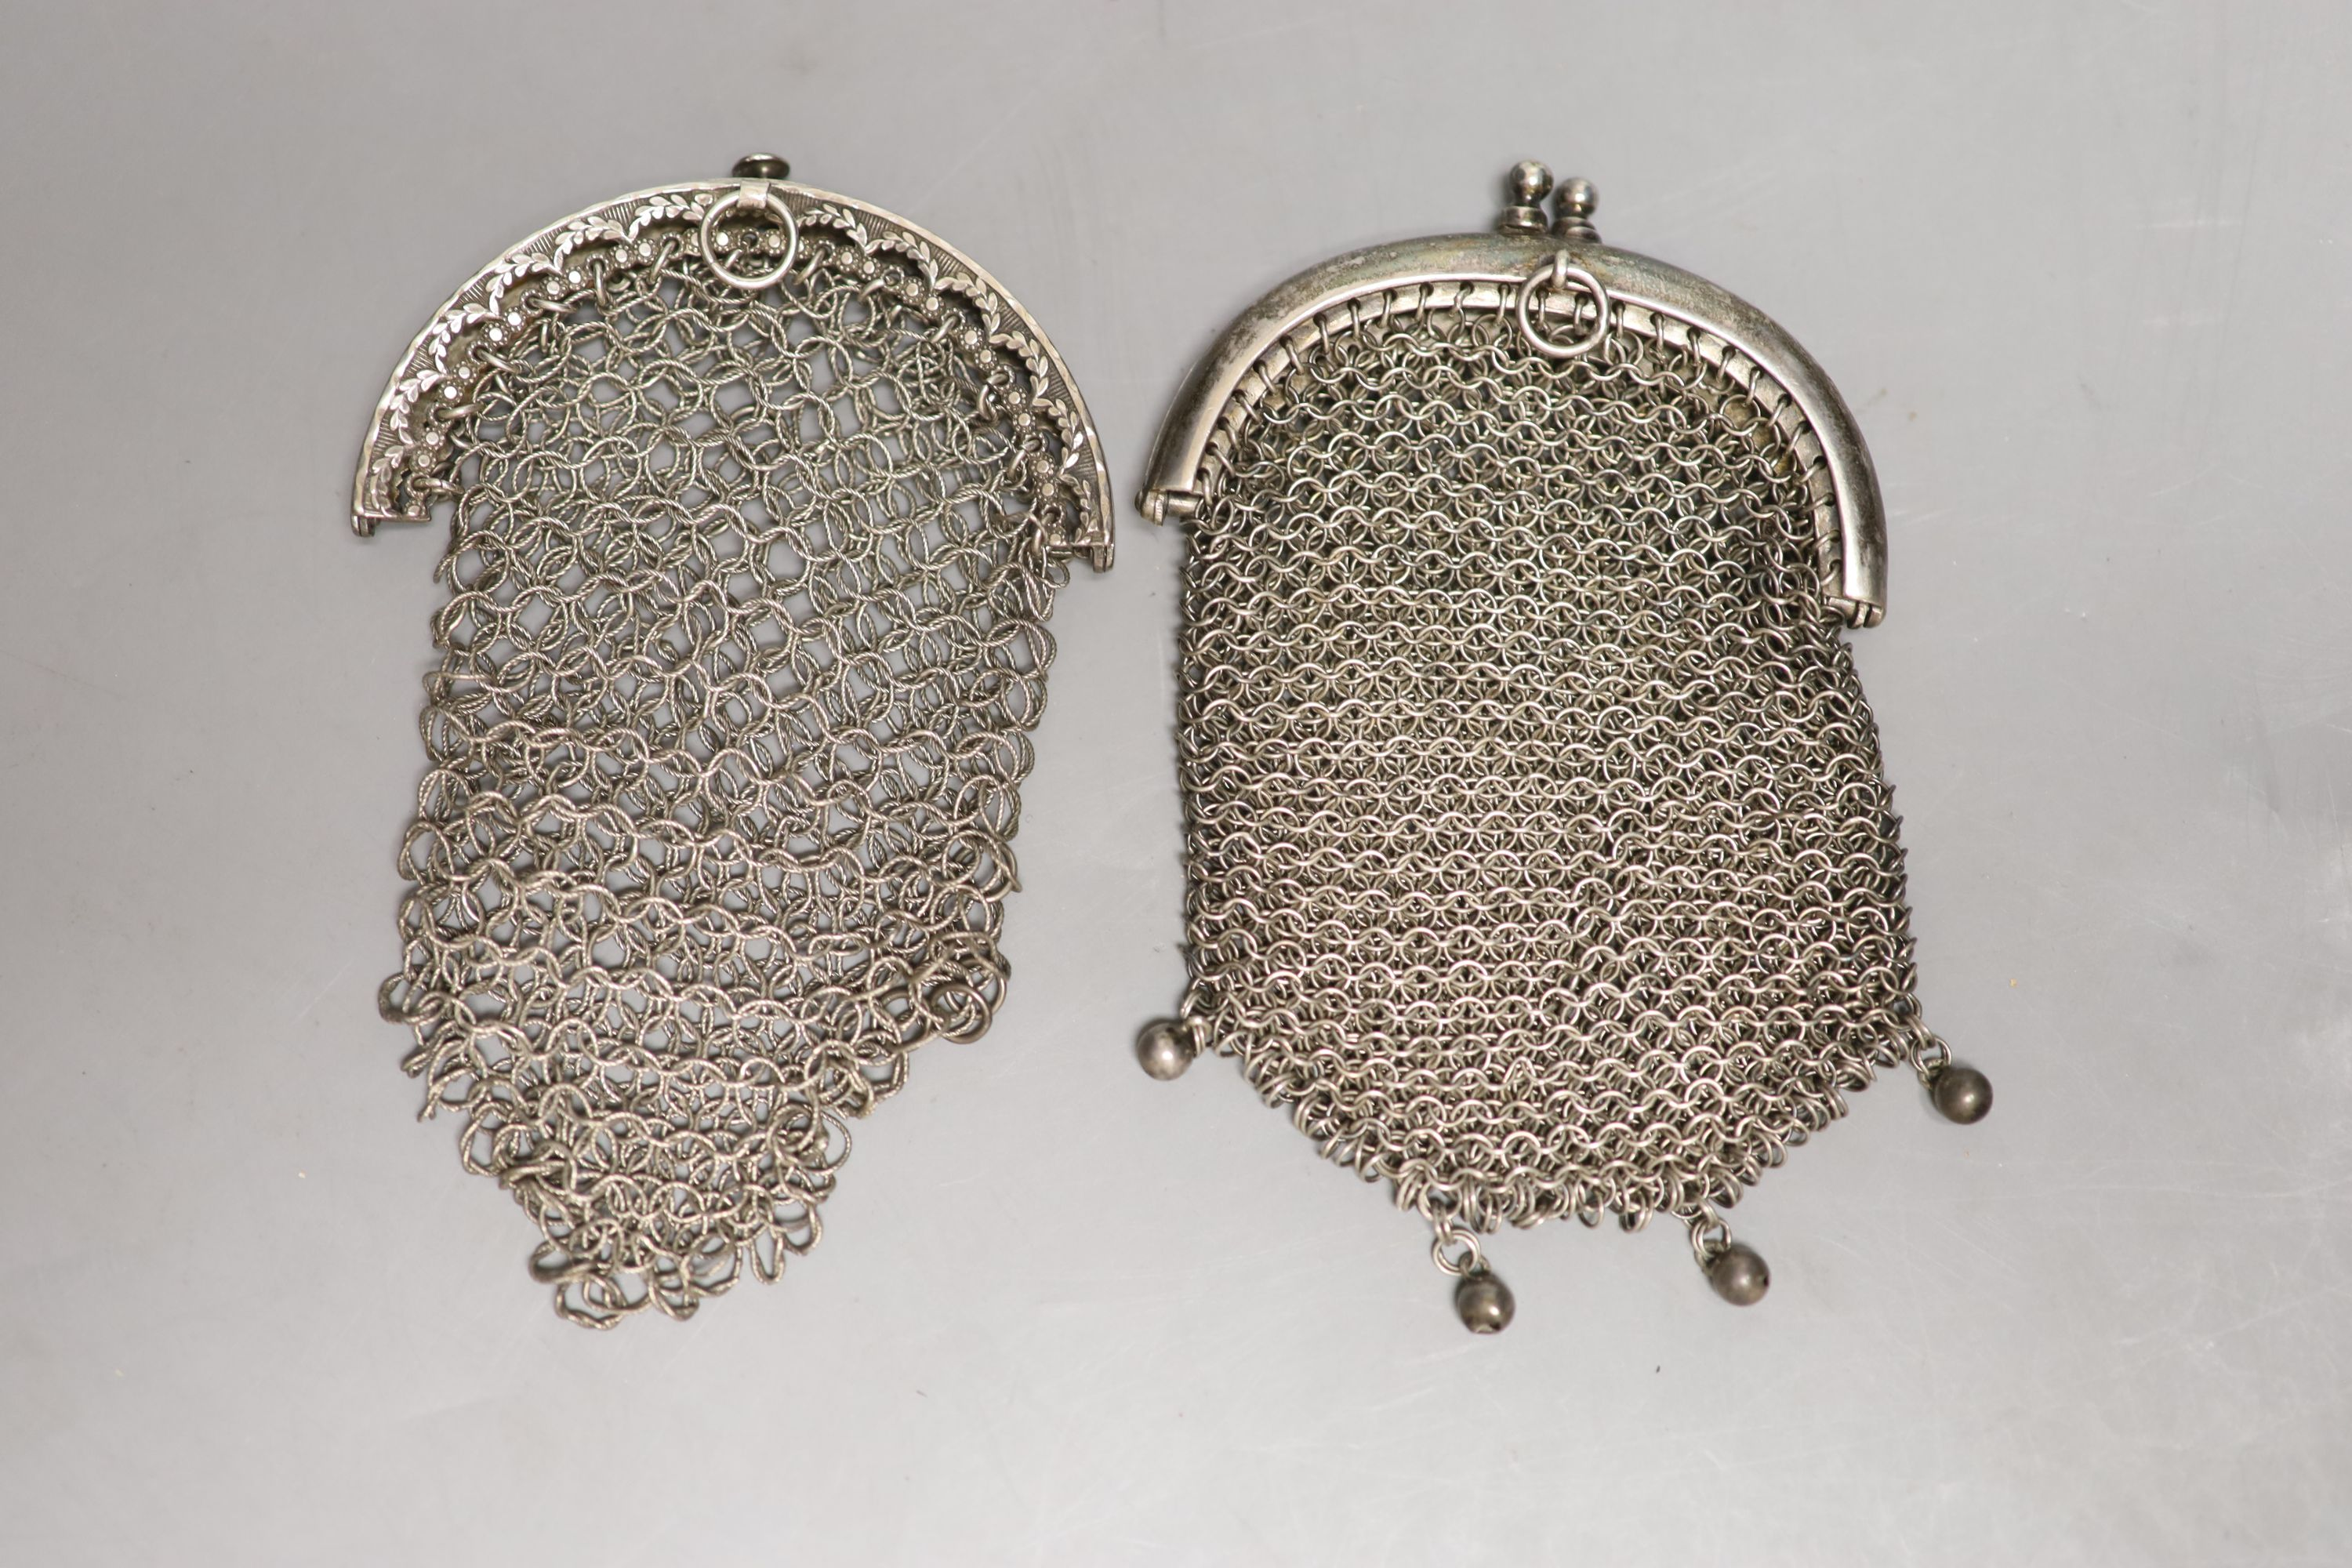 A George III silver chain link purse, John Shaw, Birmingham, 1810, 10cm and one other white metal - Image 2 of 2